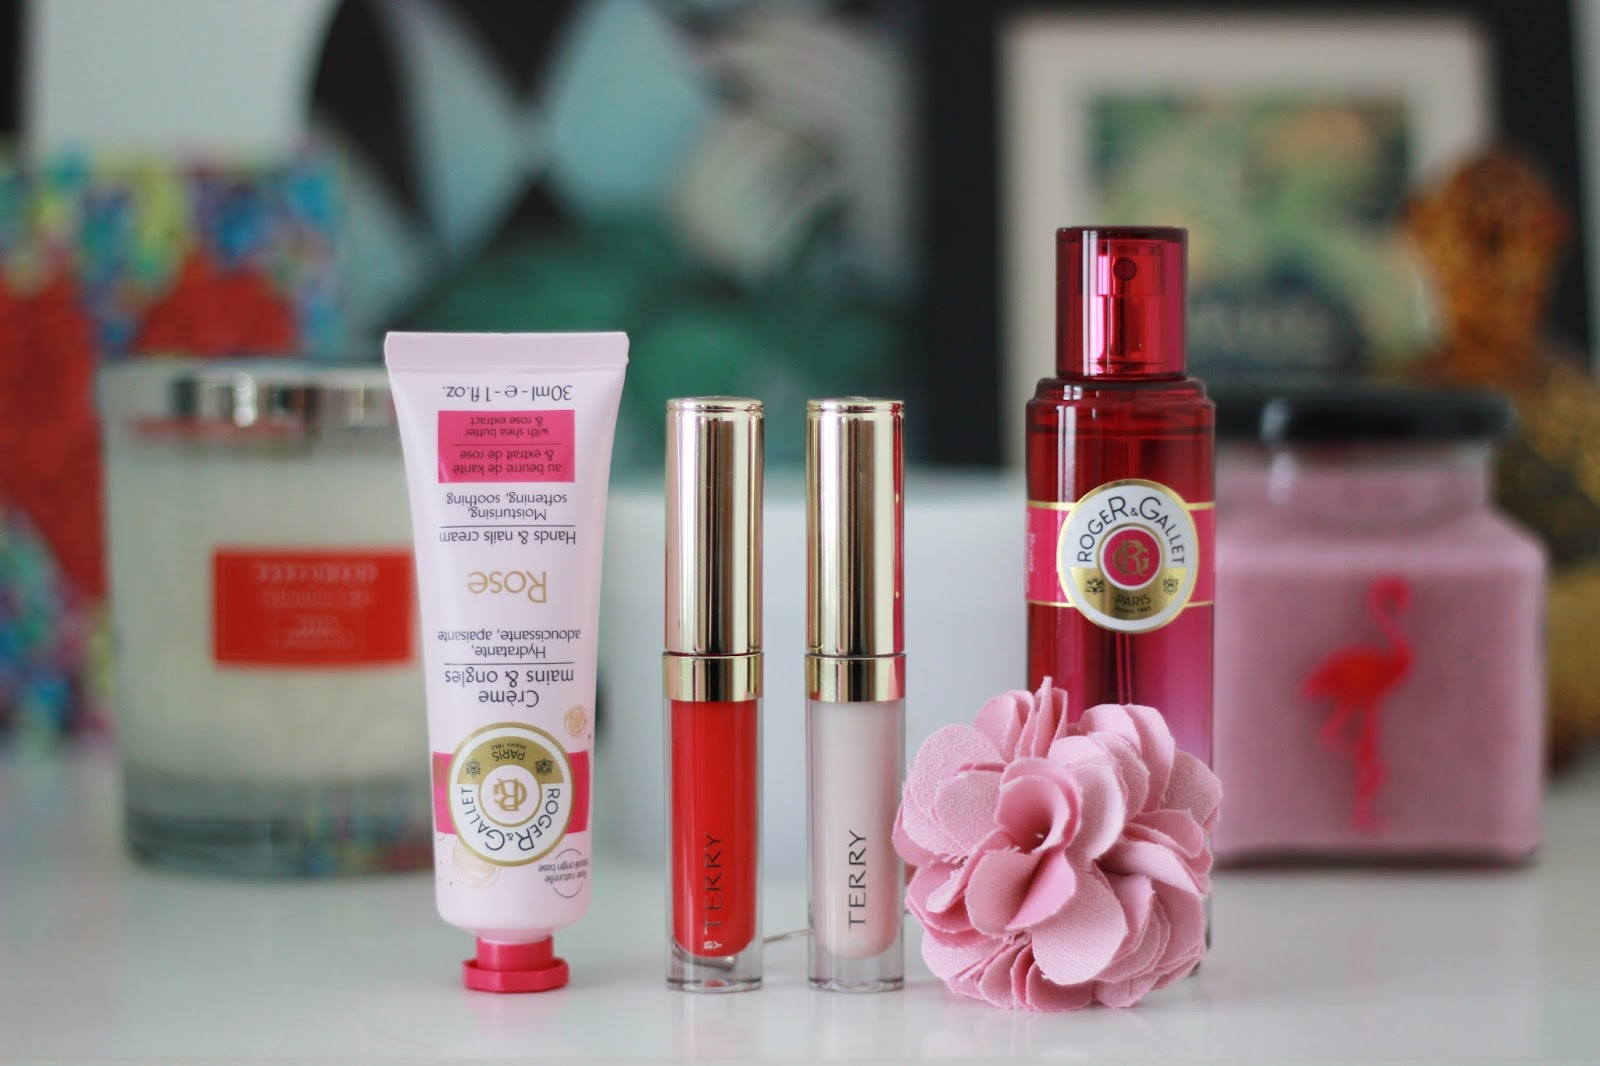 rose scented bath, body and makeup products